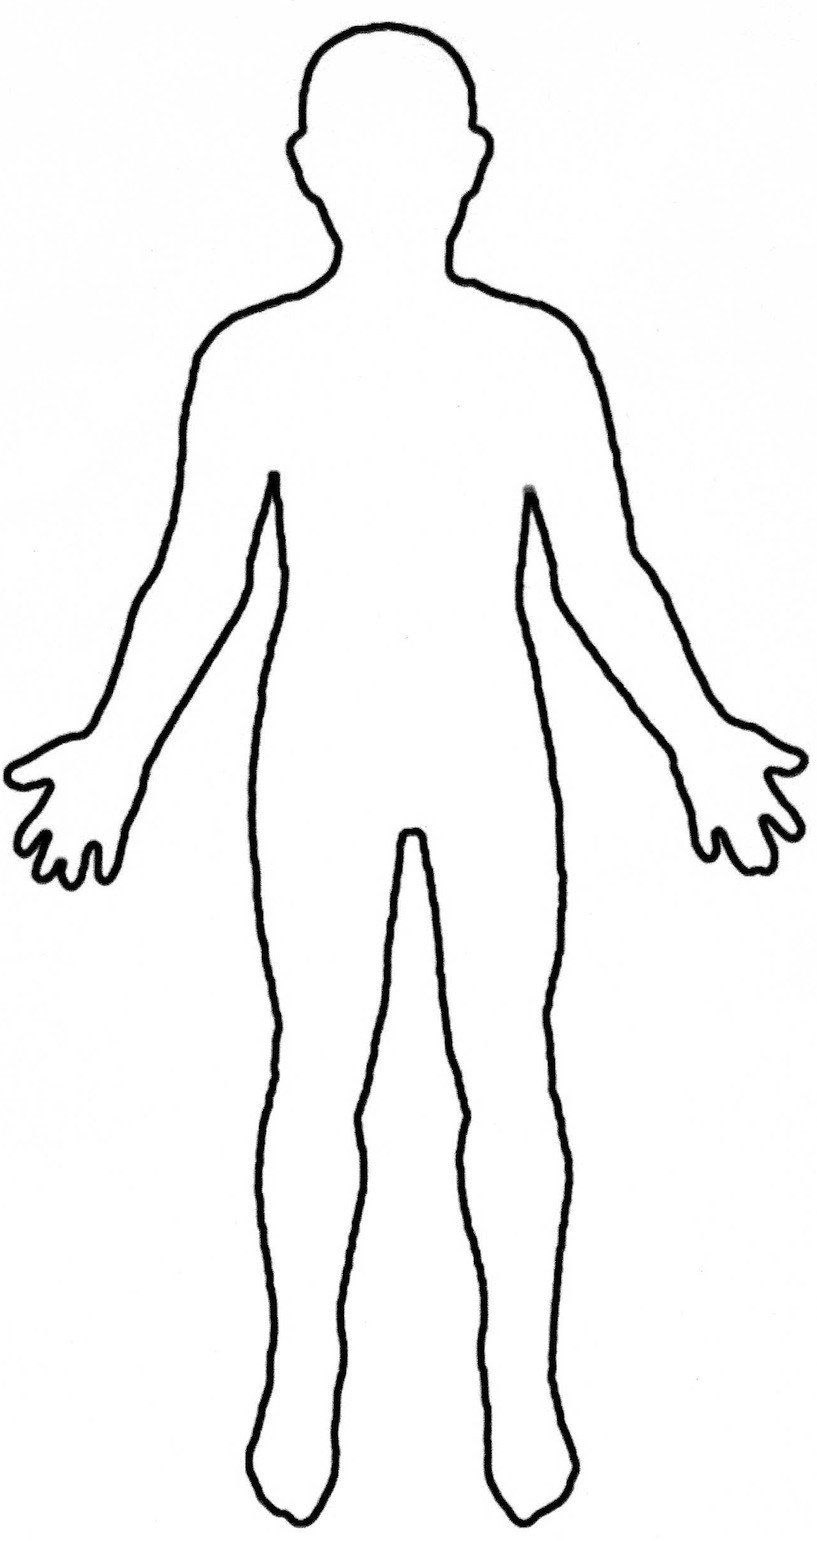 Outline Of A Human Human Body Outline Printable